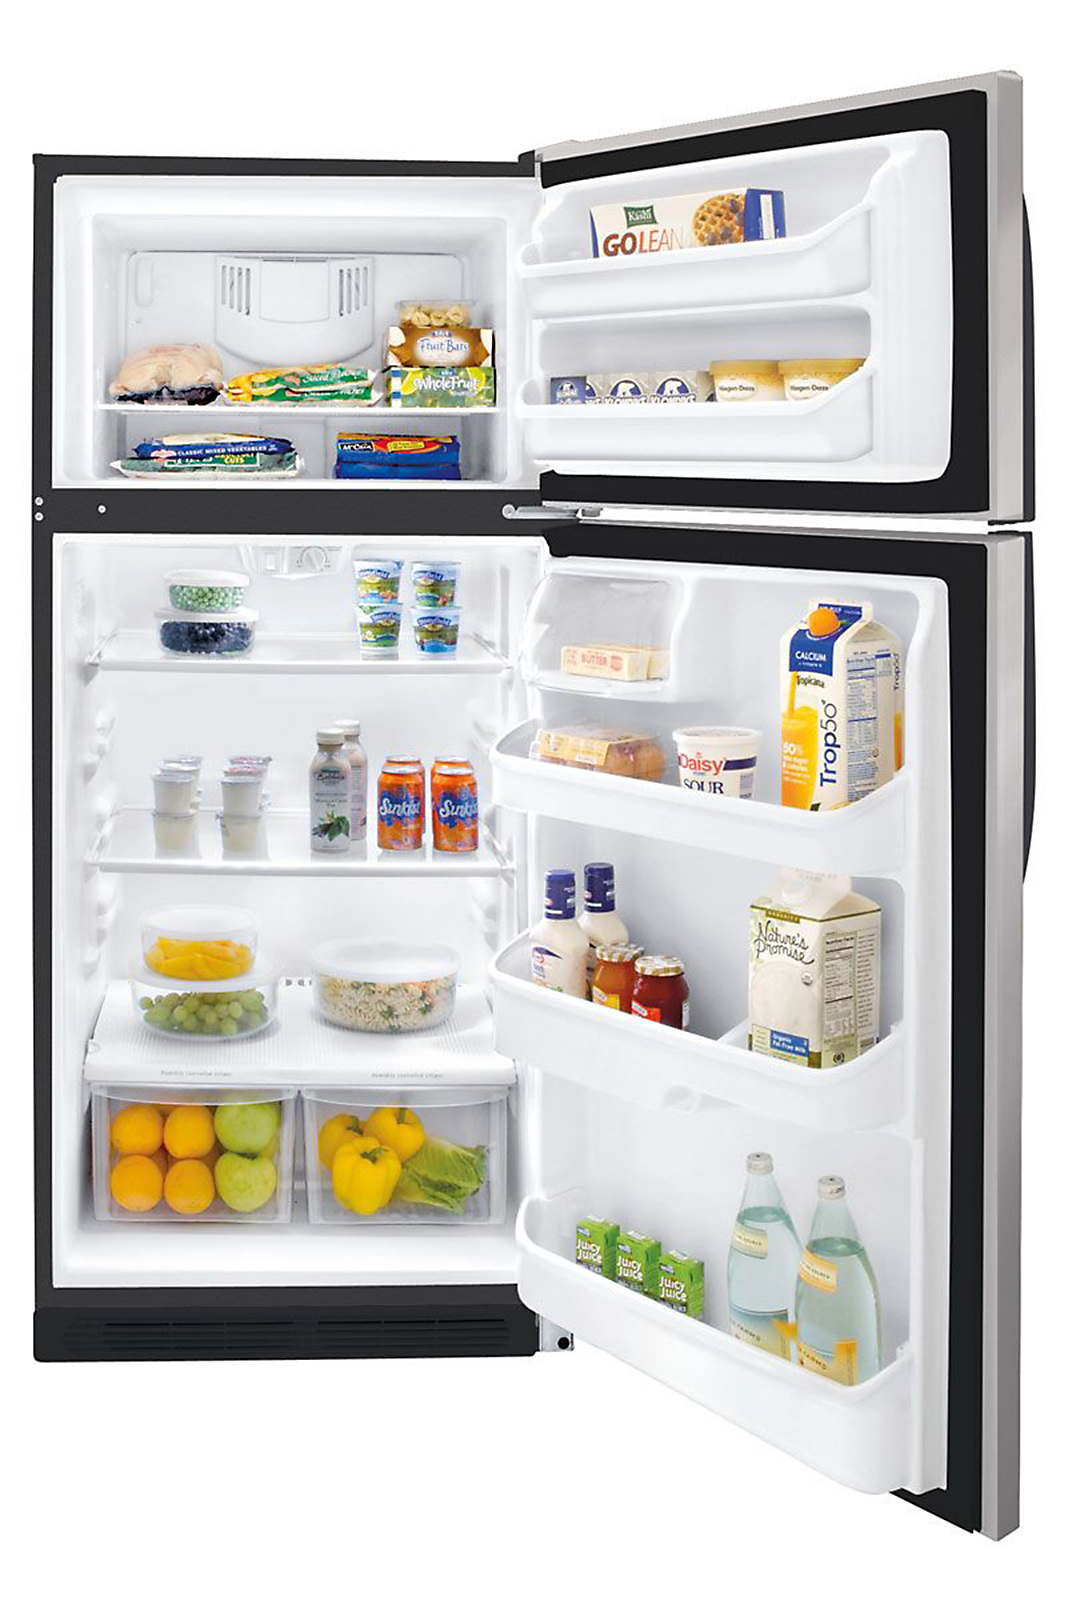 Kenmore 16.5 cu. ft. Top-Freezer Refrigerator - Stainless Steel